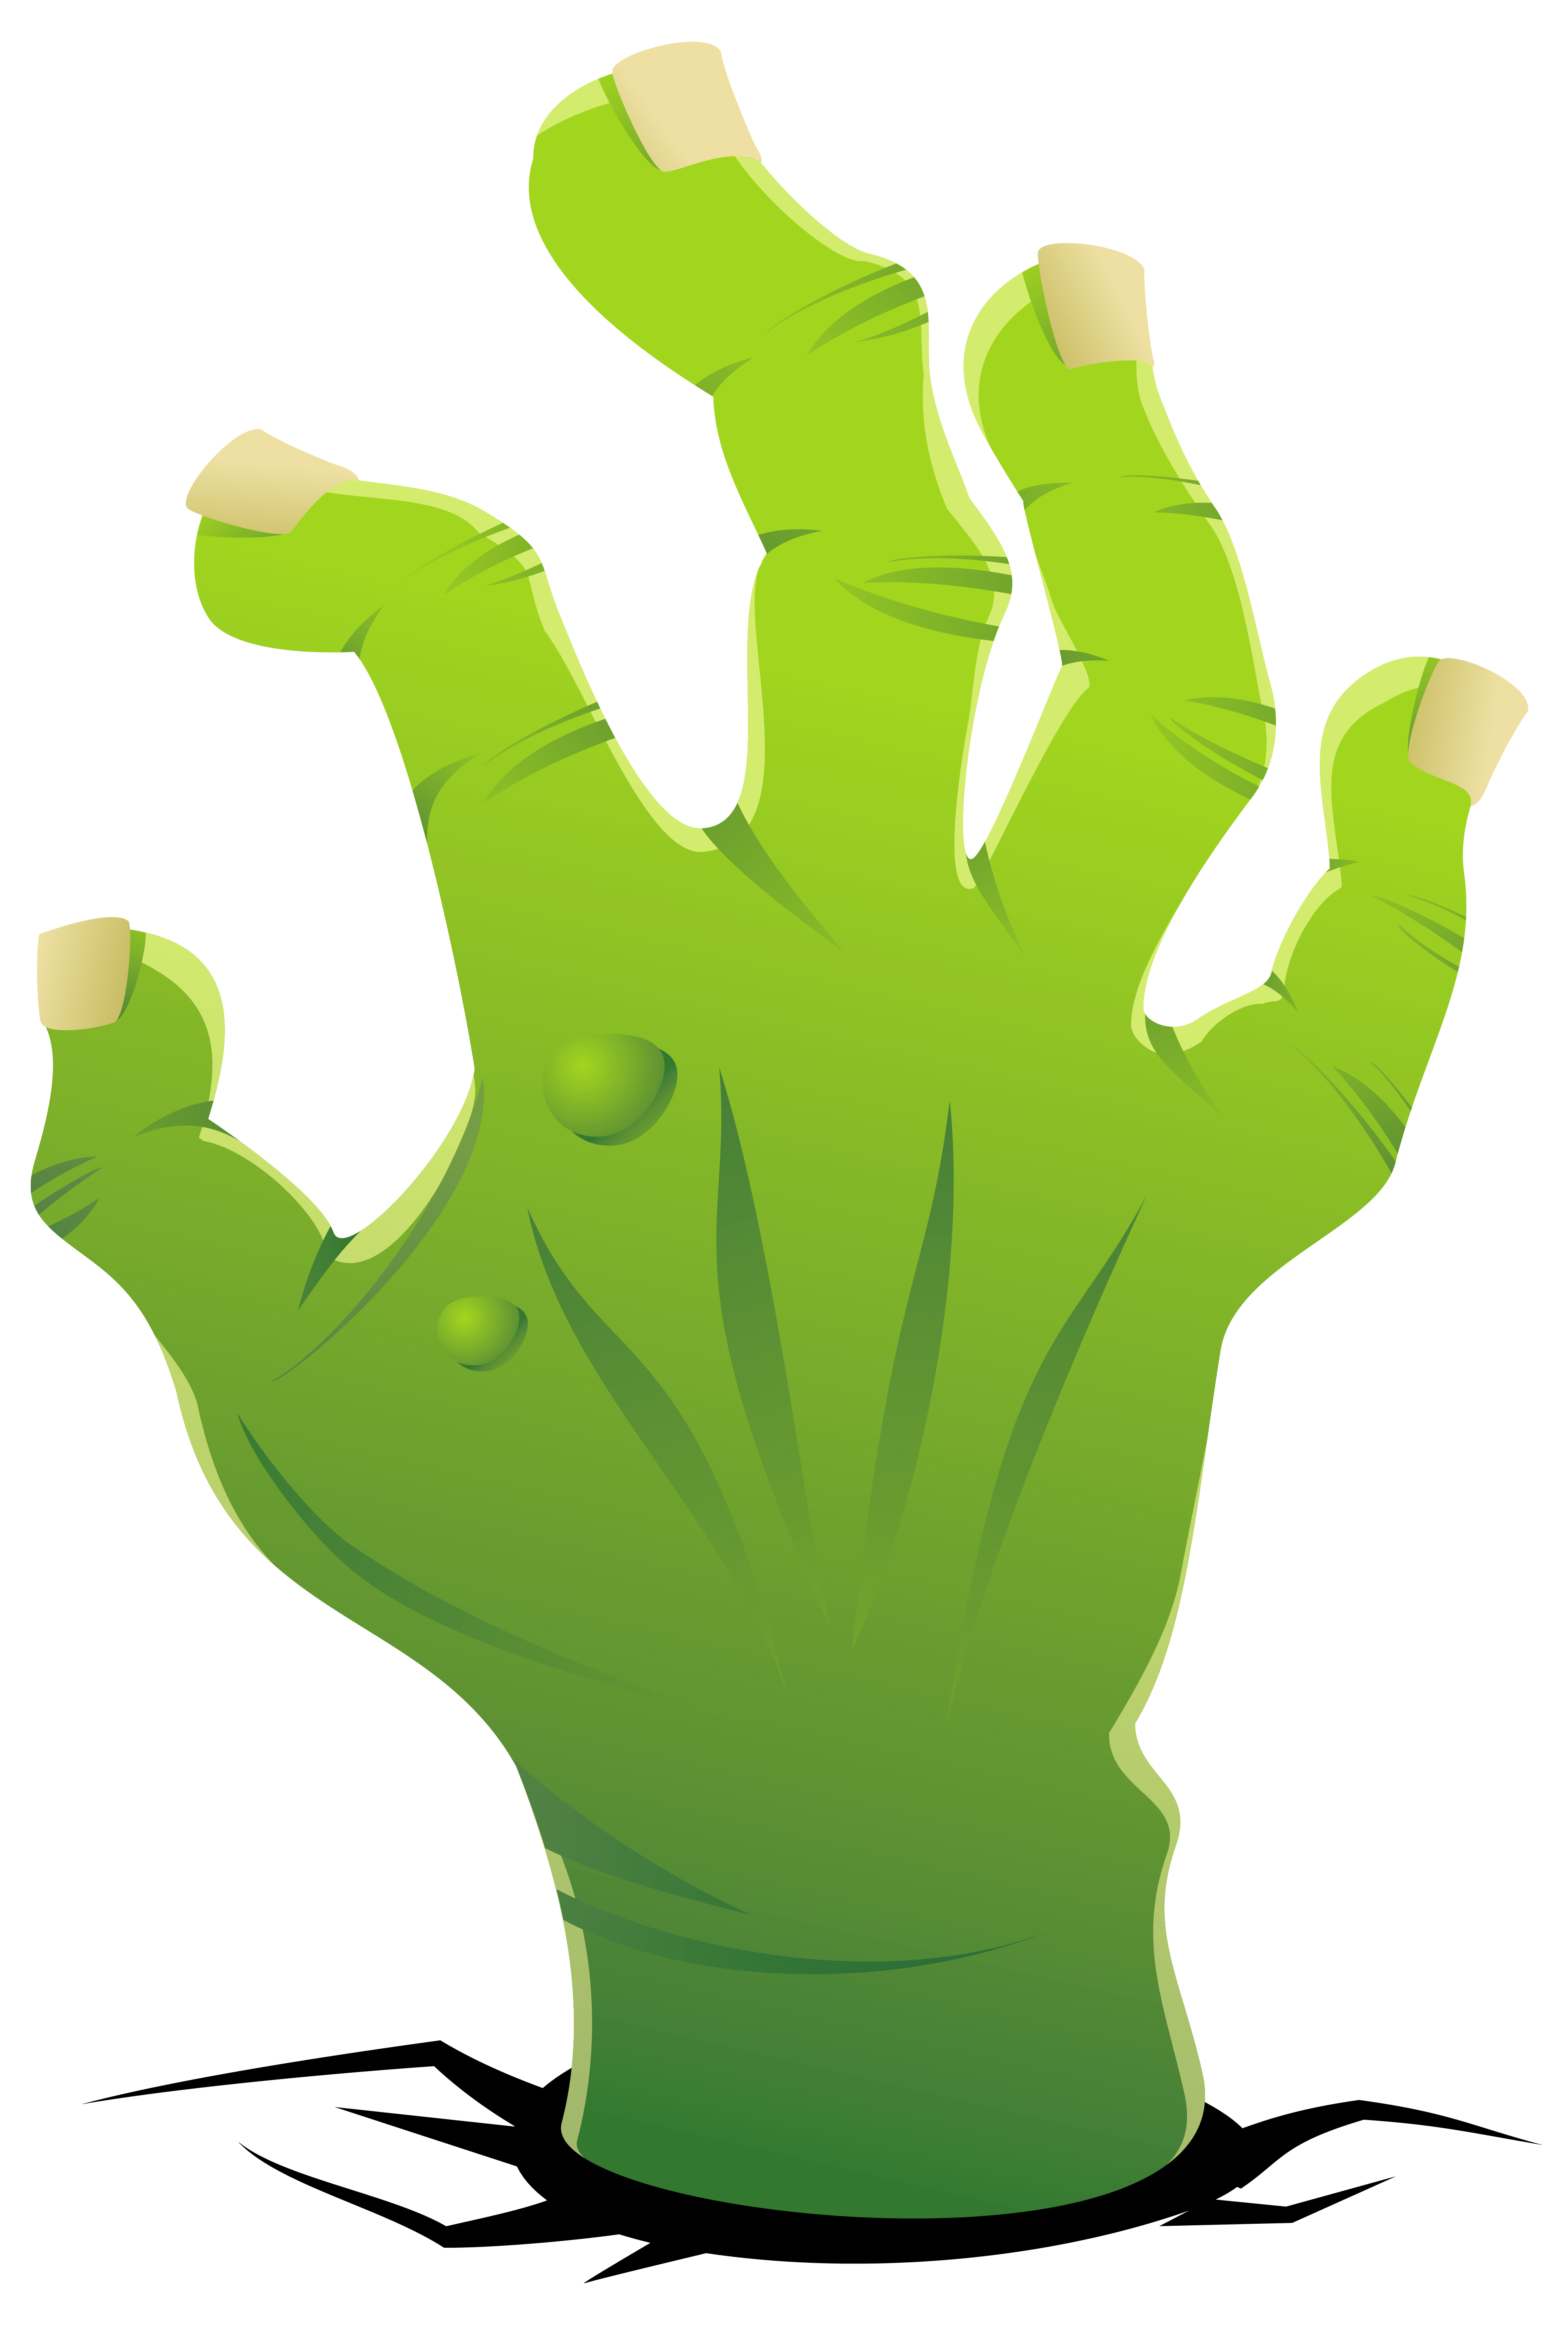 Halloween zombie clipart clip art library stock Zombie Hand PNG Clipart Image | Gallery Yopriceville - High-Quality ... clip art library stock